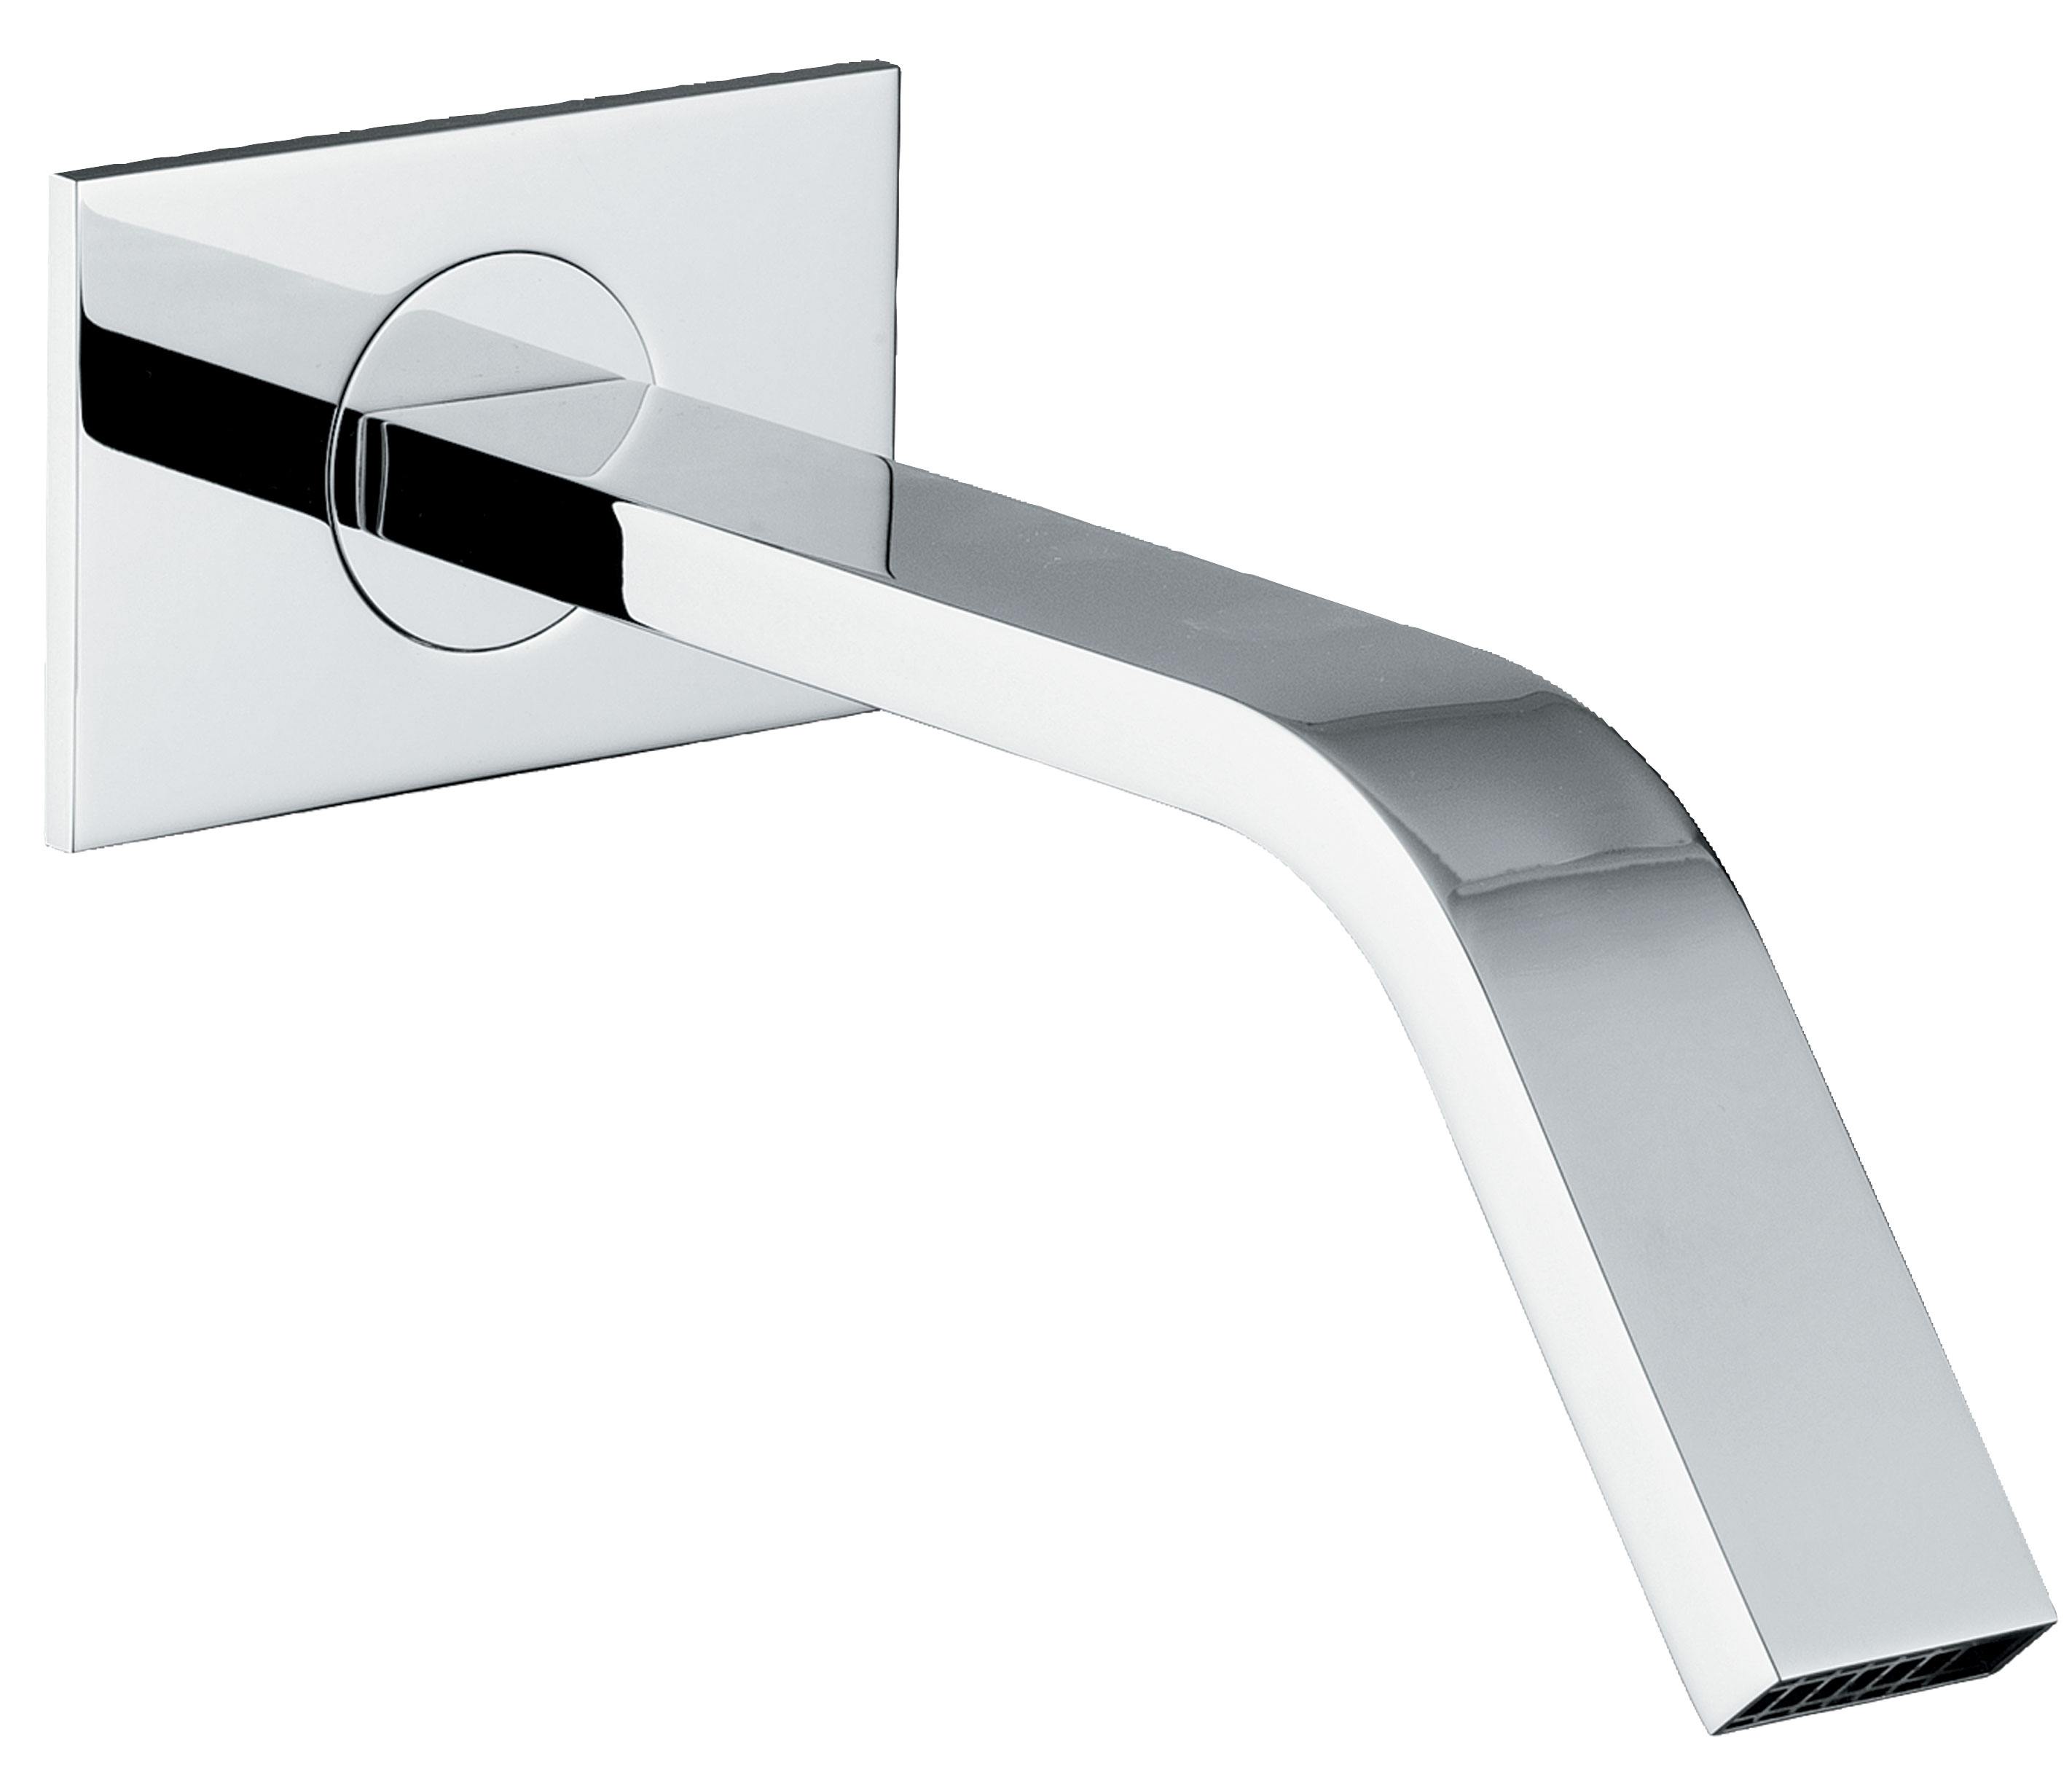 click on Square Wall Mounted Bath Spout image to enlarge